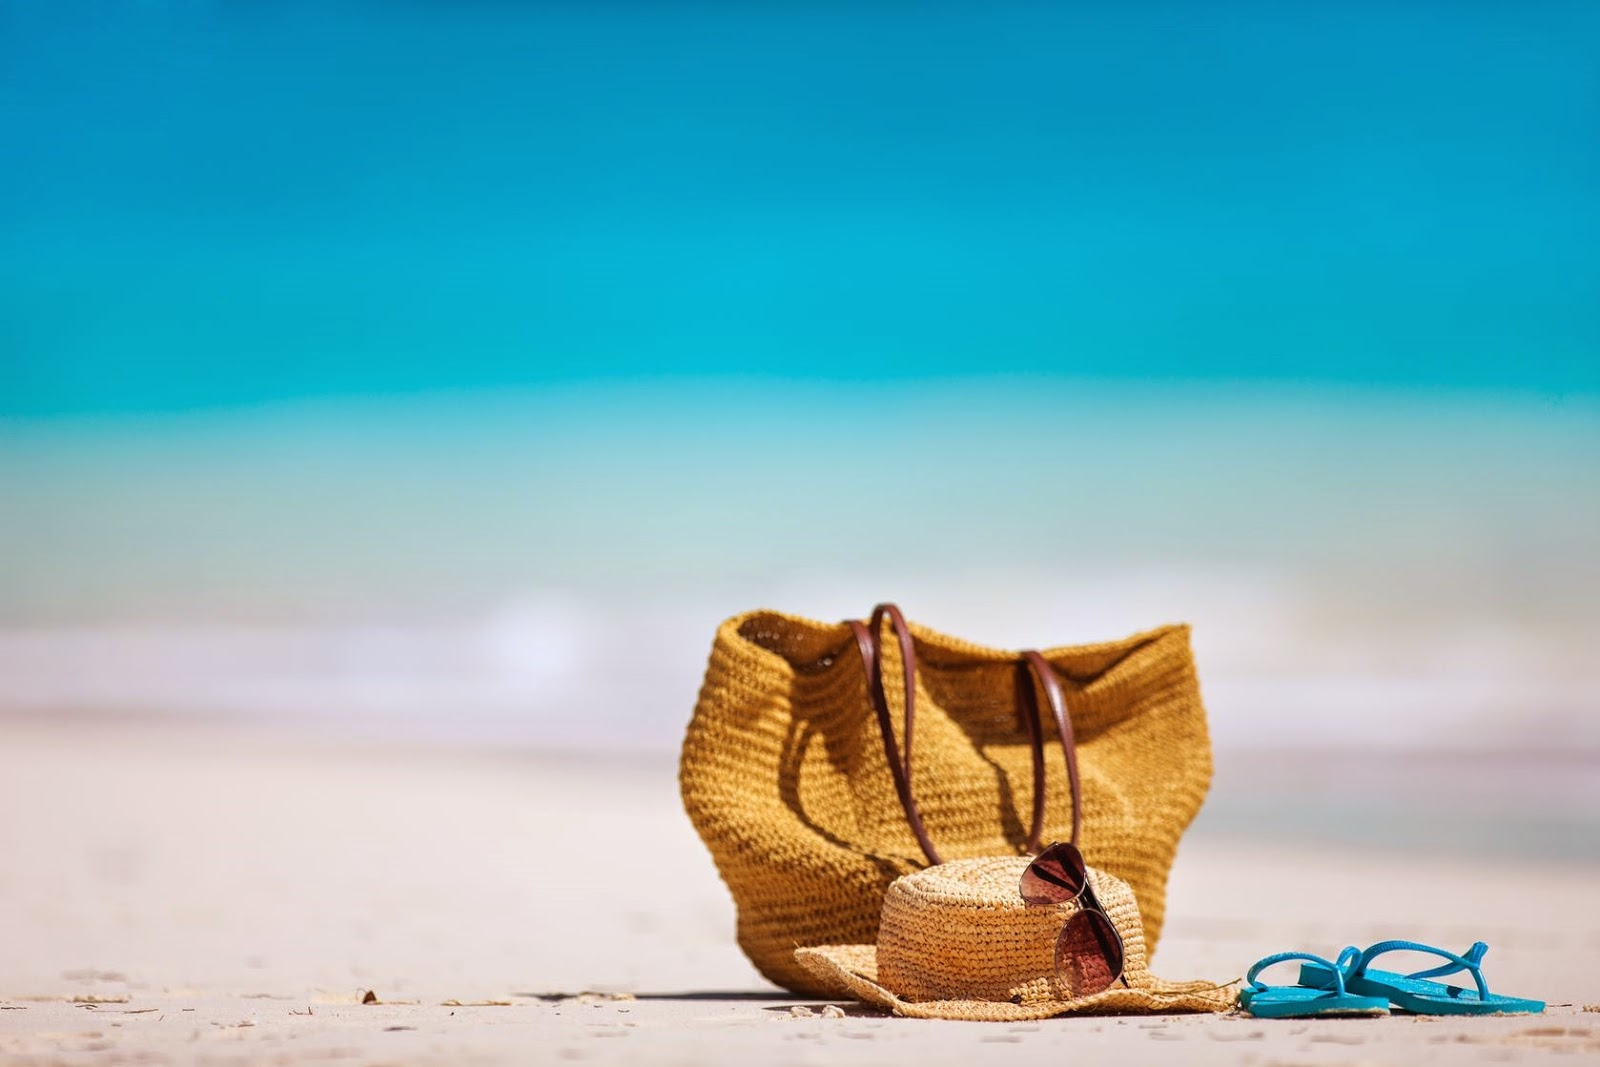 A discarded purse, hat, sandals, and sunglasses on a beautiful beach.